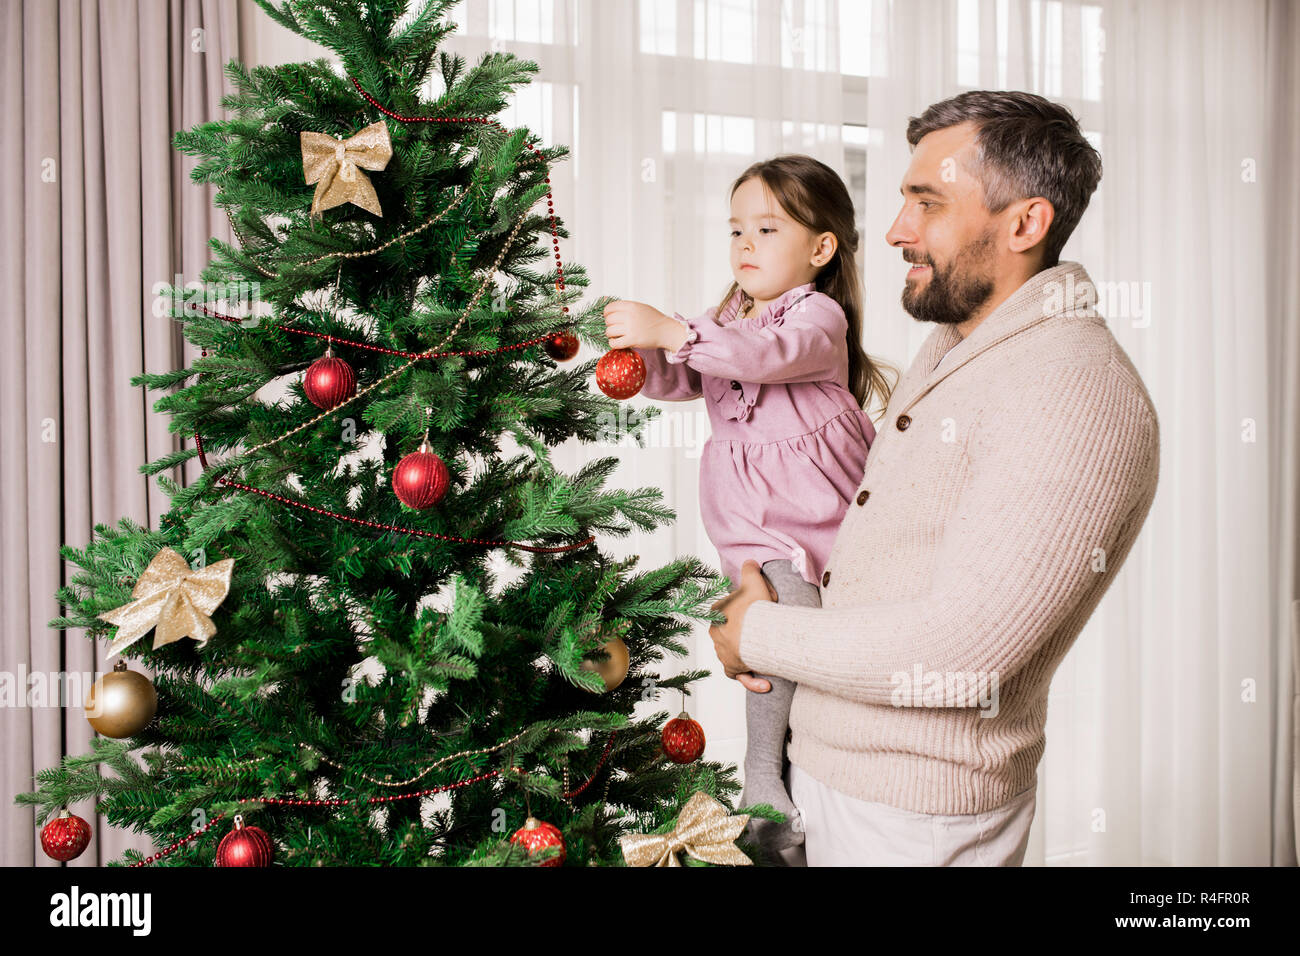 Father and Daughter Decorating Tree - Stock Image